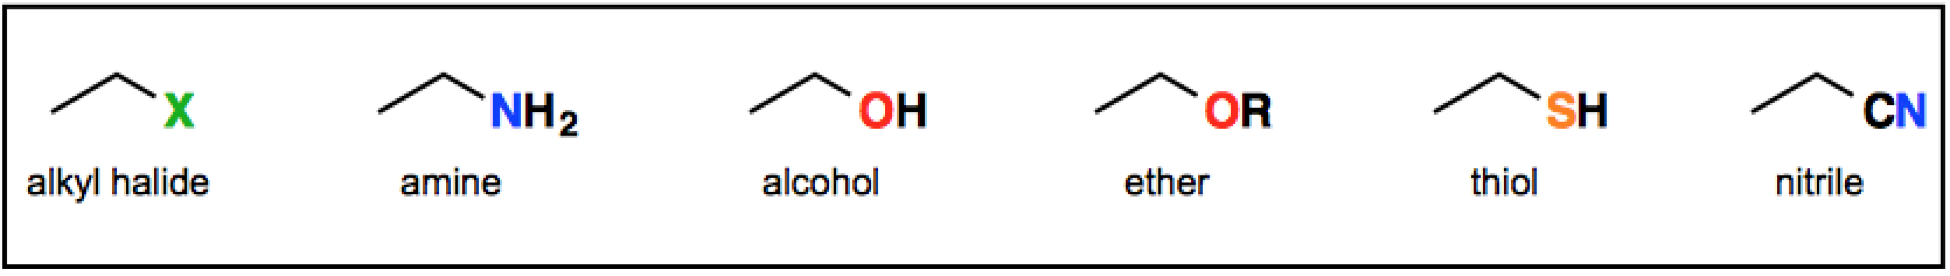 list-of-functional-groups-without-carbonyls